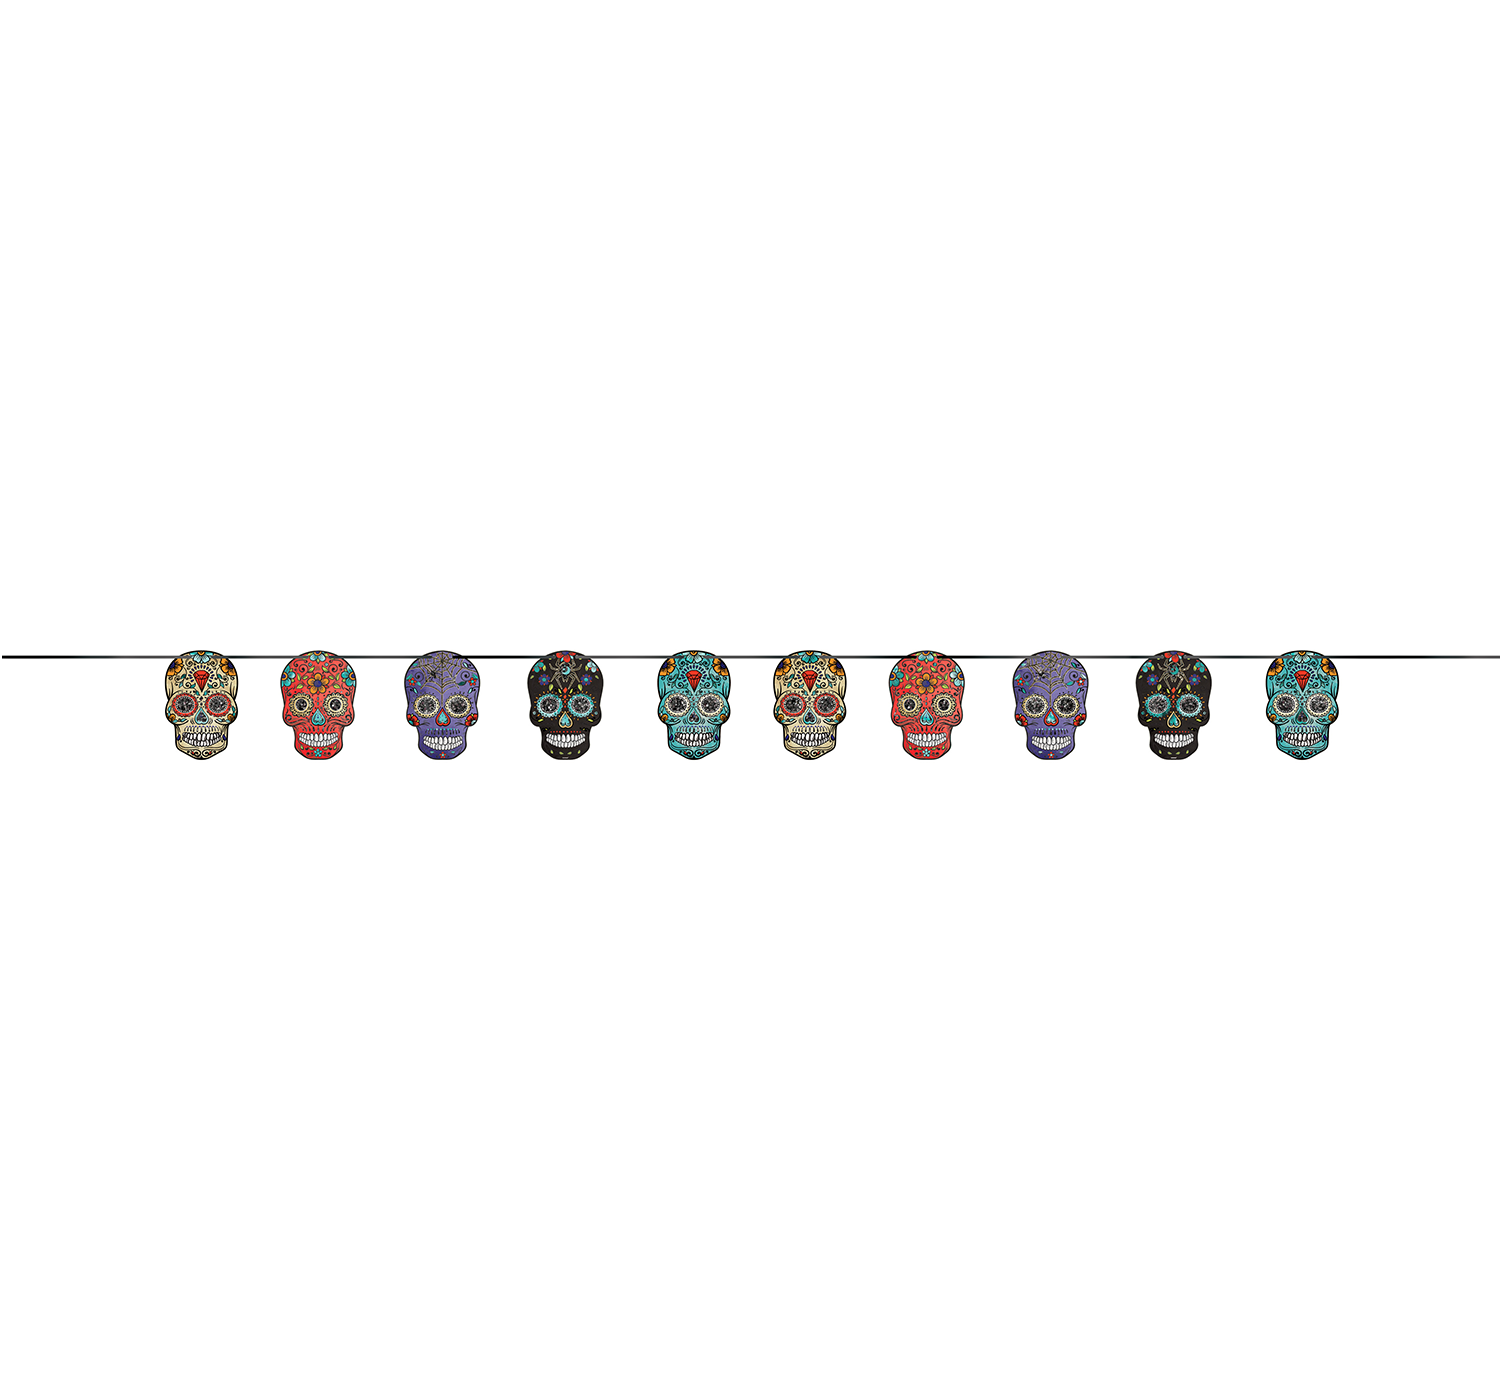 Sugar Skull Day of the Dead Hanging Garland Banner